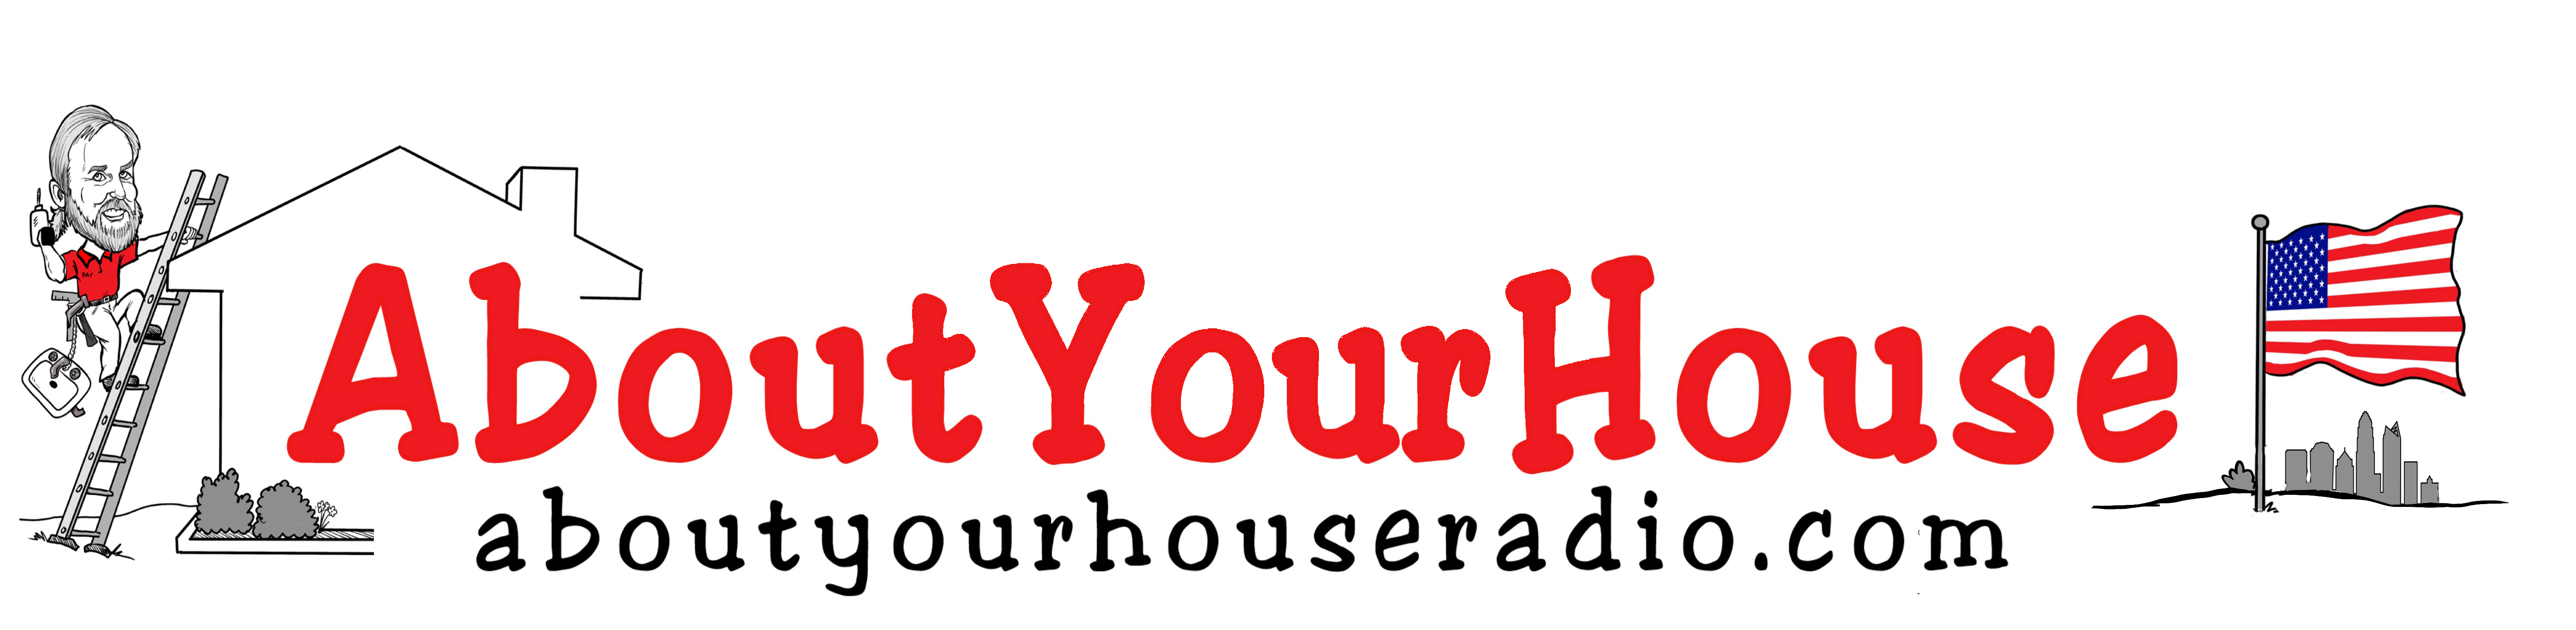 About Your House Radio